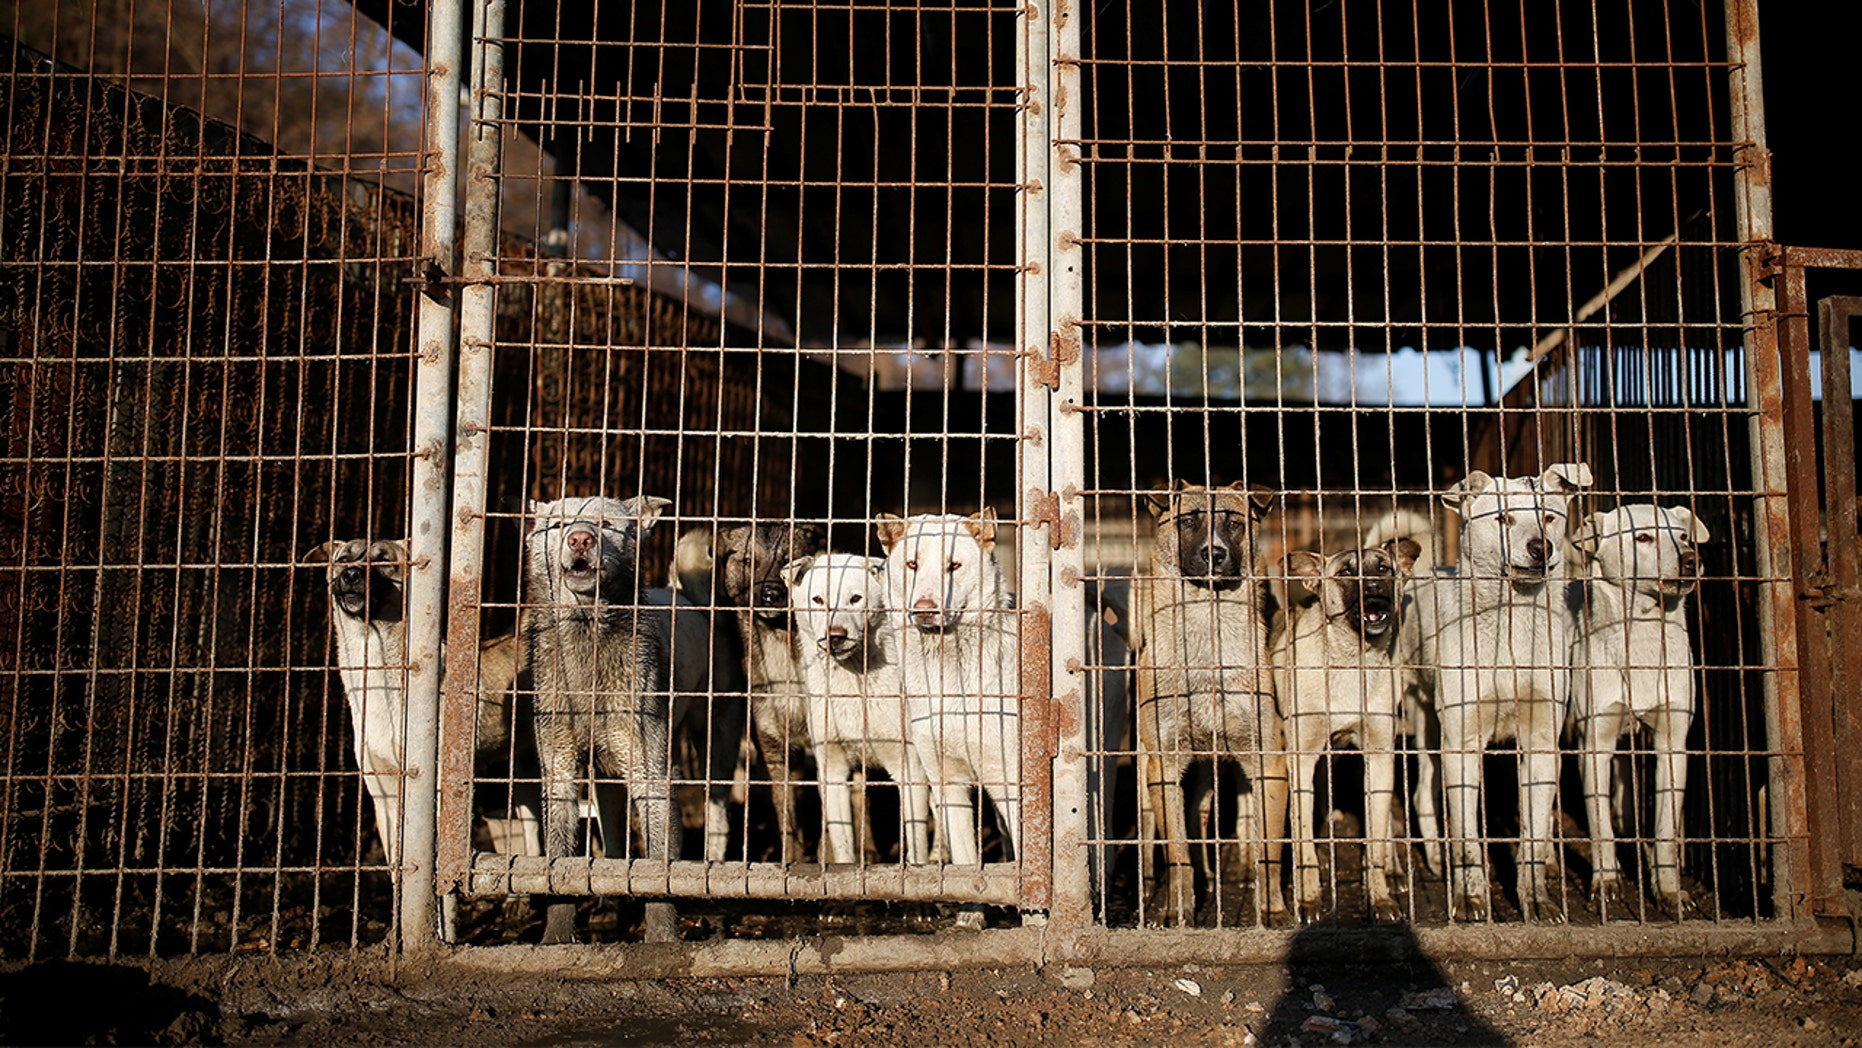 Many restaurants in Pyeongchang county are ignoring requests to stop serving dog meat during the Olympics, with some saying it might threaten their businesses or livelihoods.